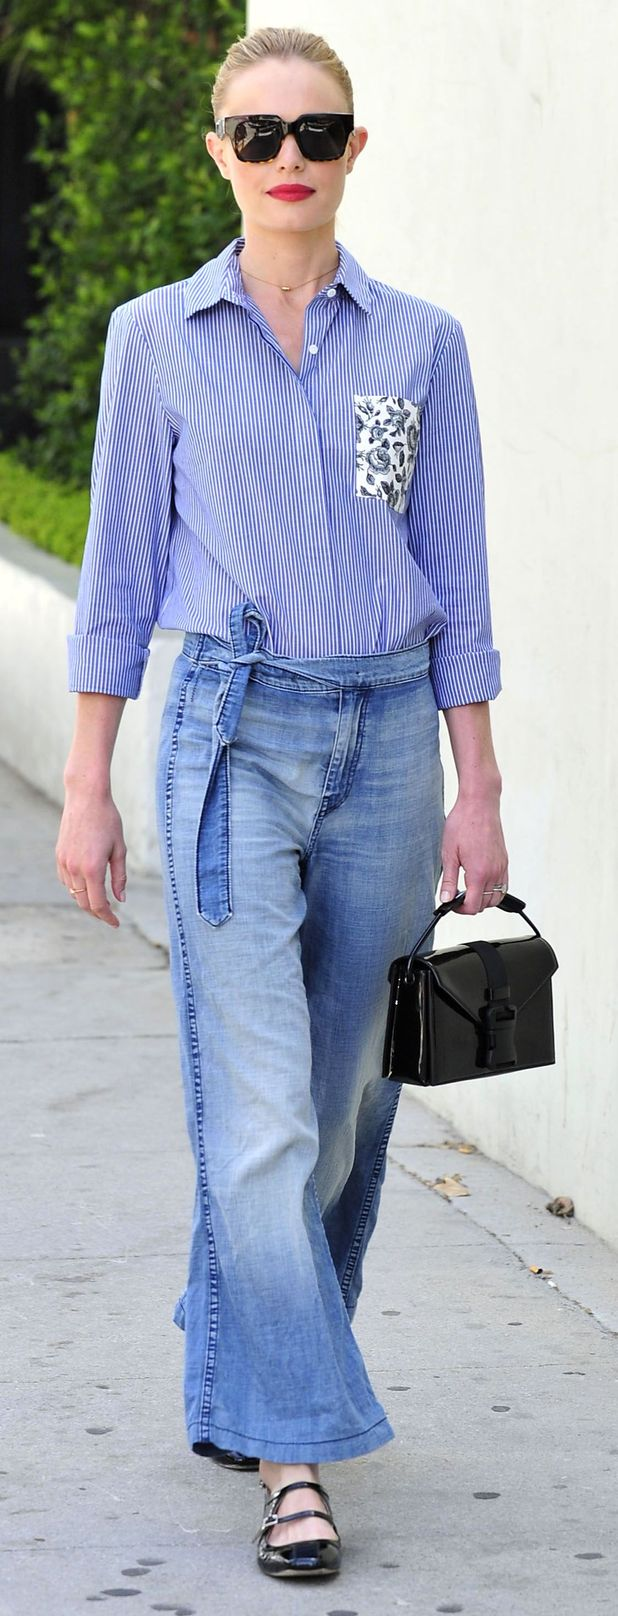 Kate Bosworth out and about in Los Angeles, 11th August 2015